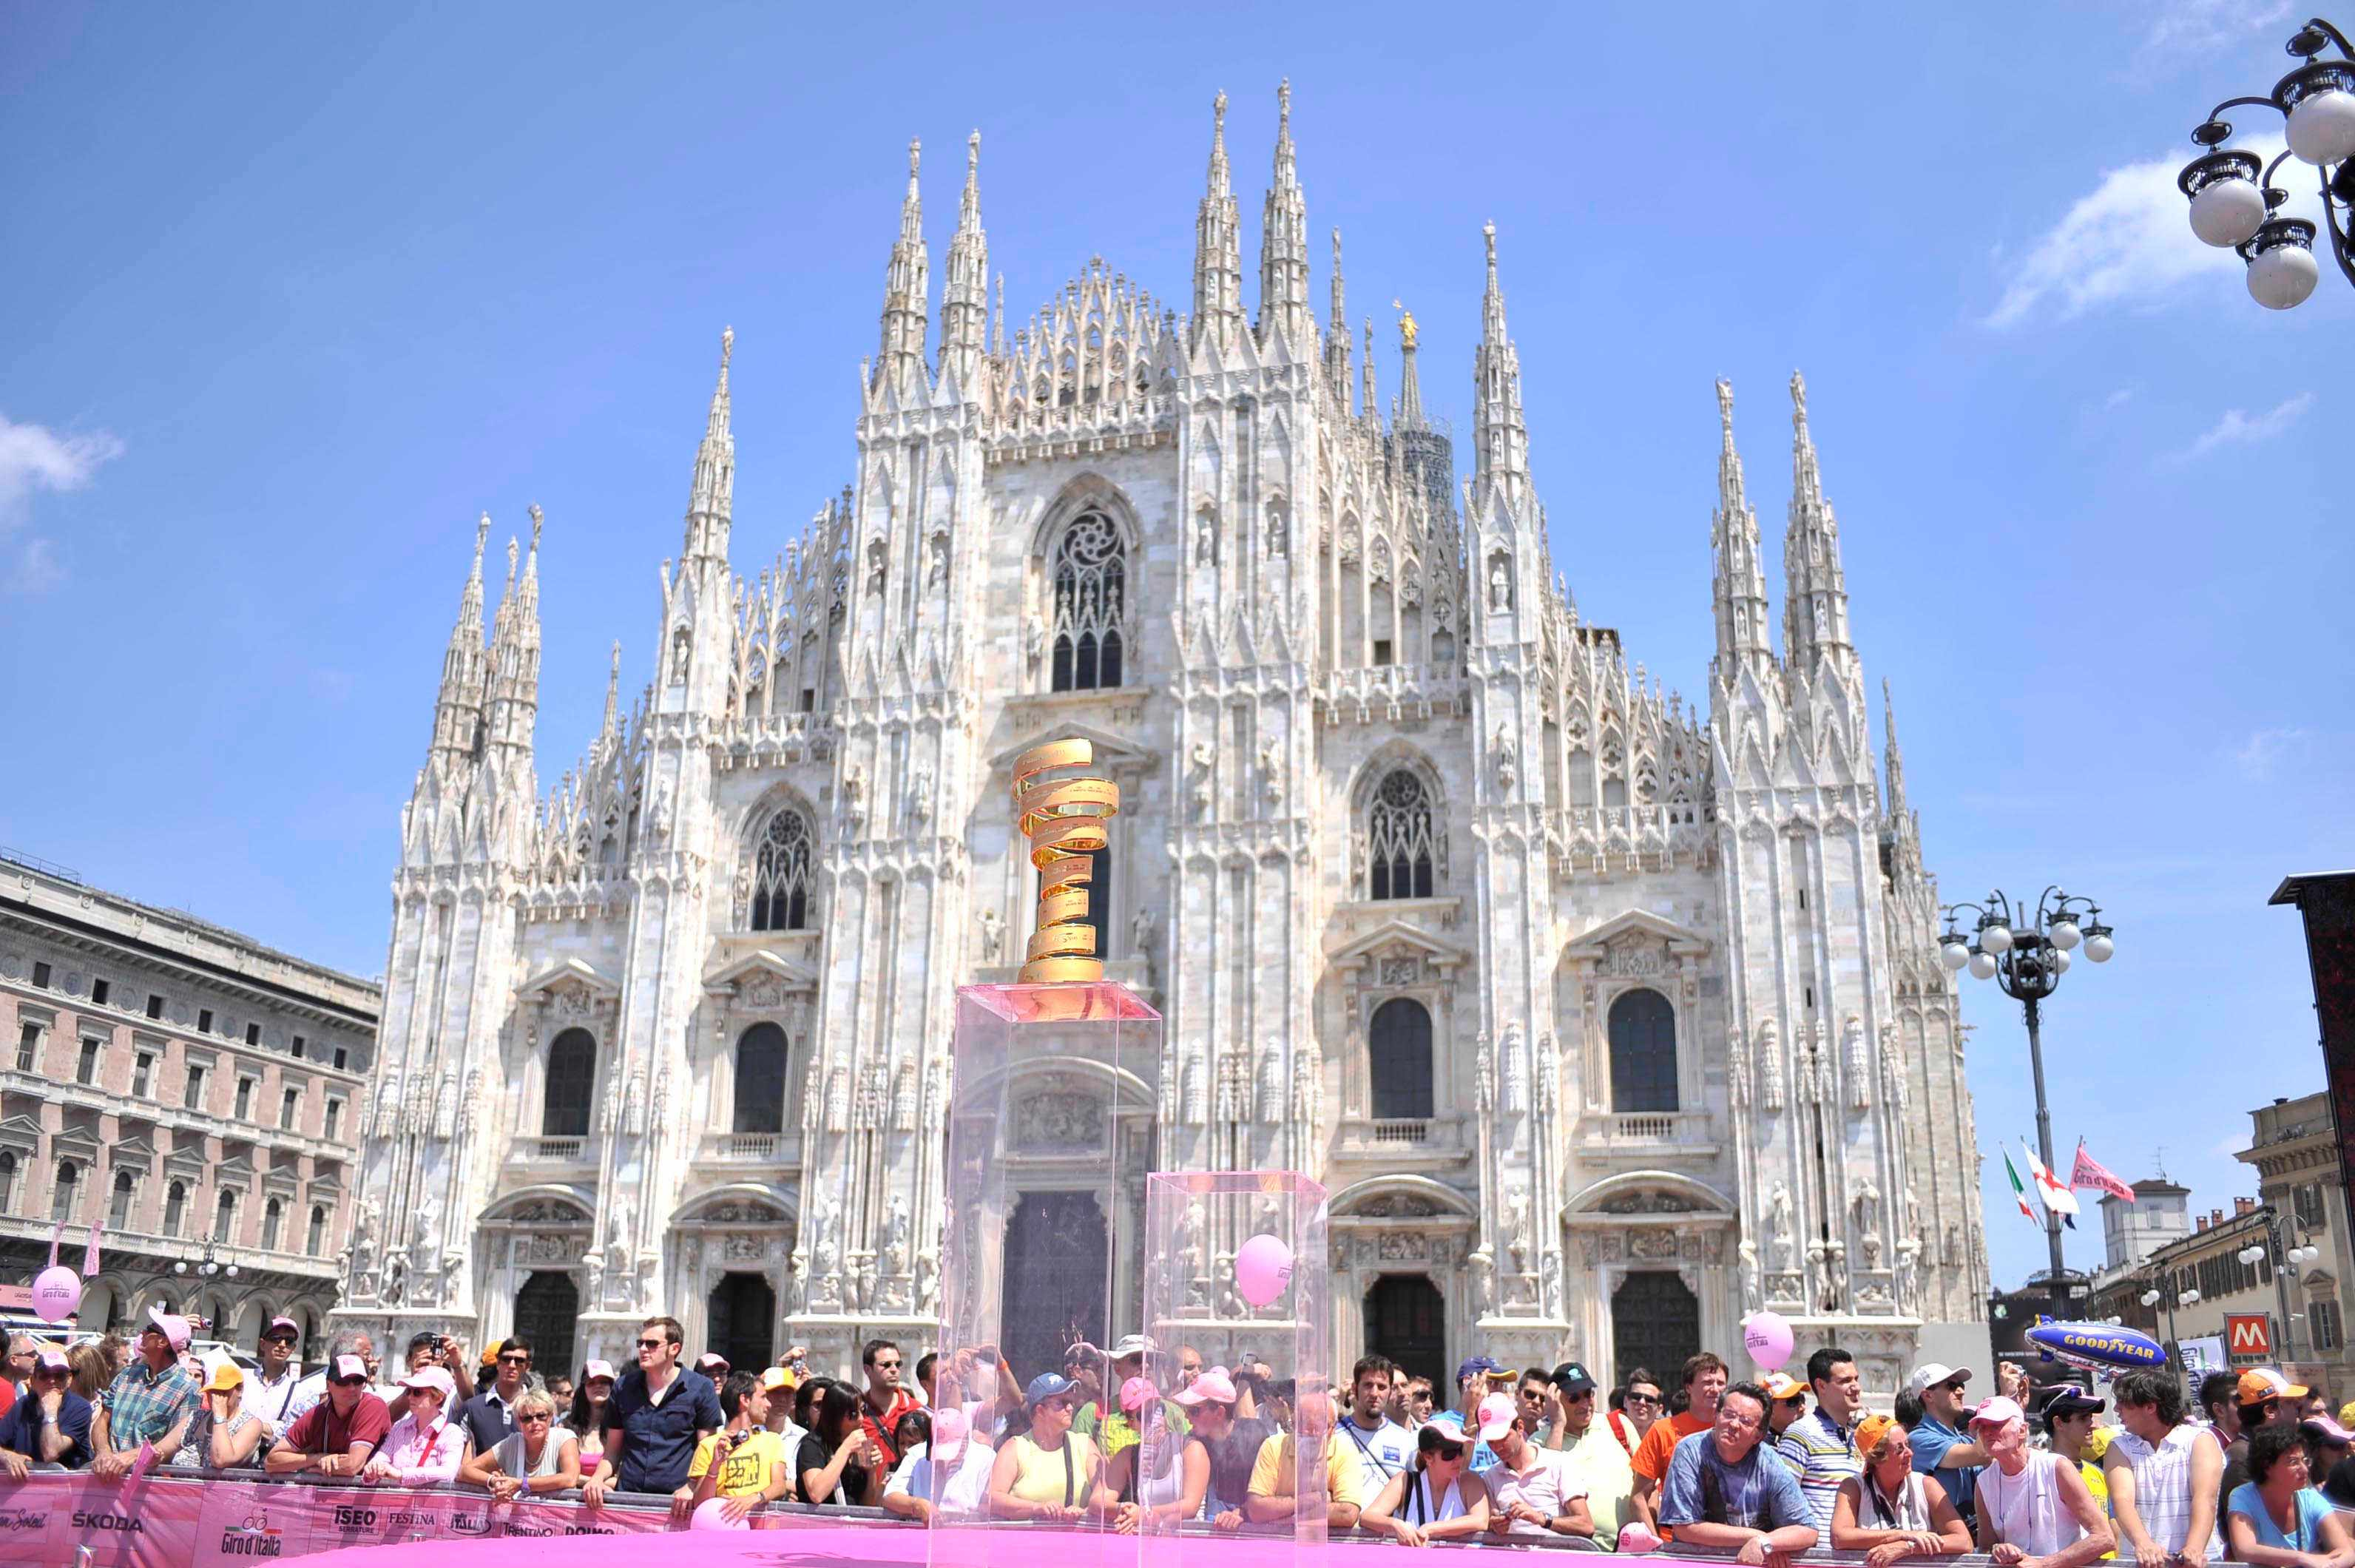 RCS Sport want to bring the splendor of the Giro d'Italia to American riders